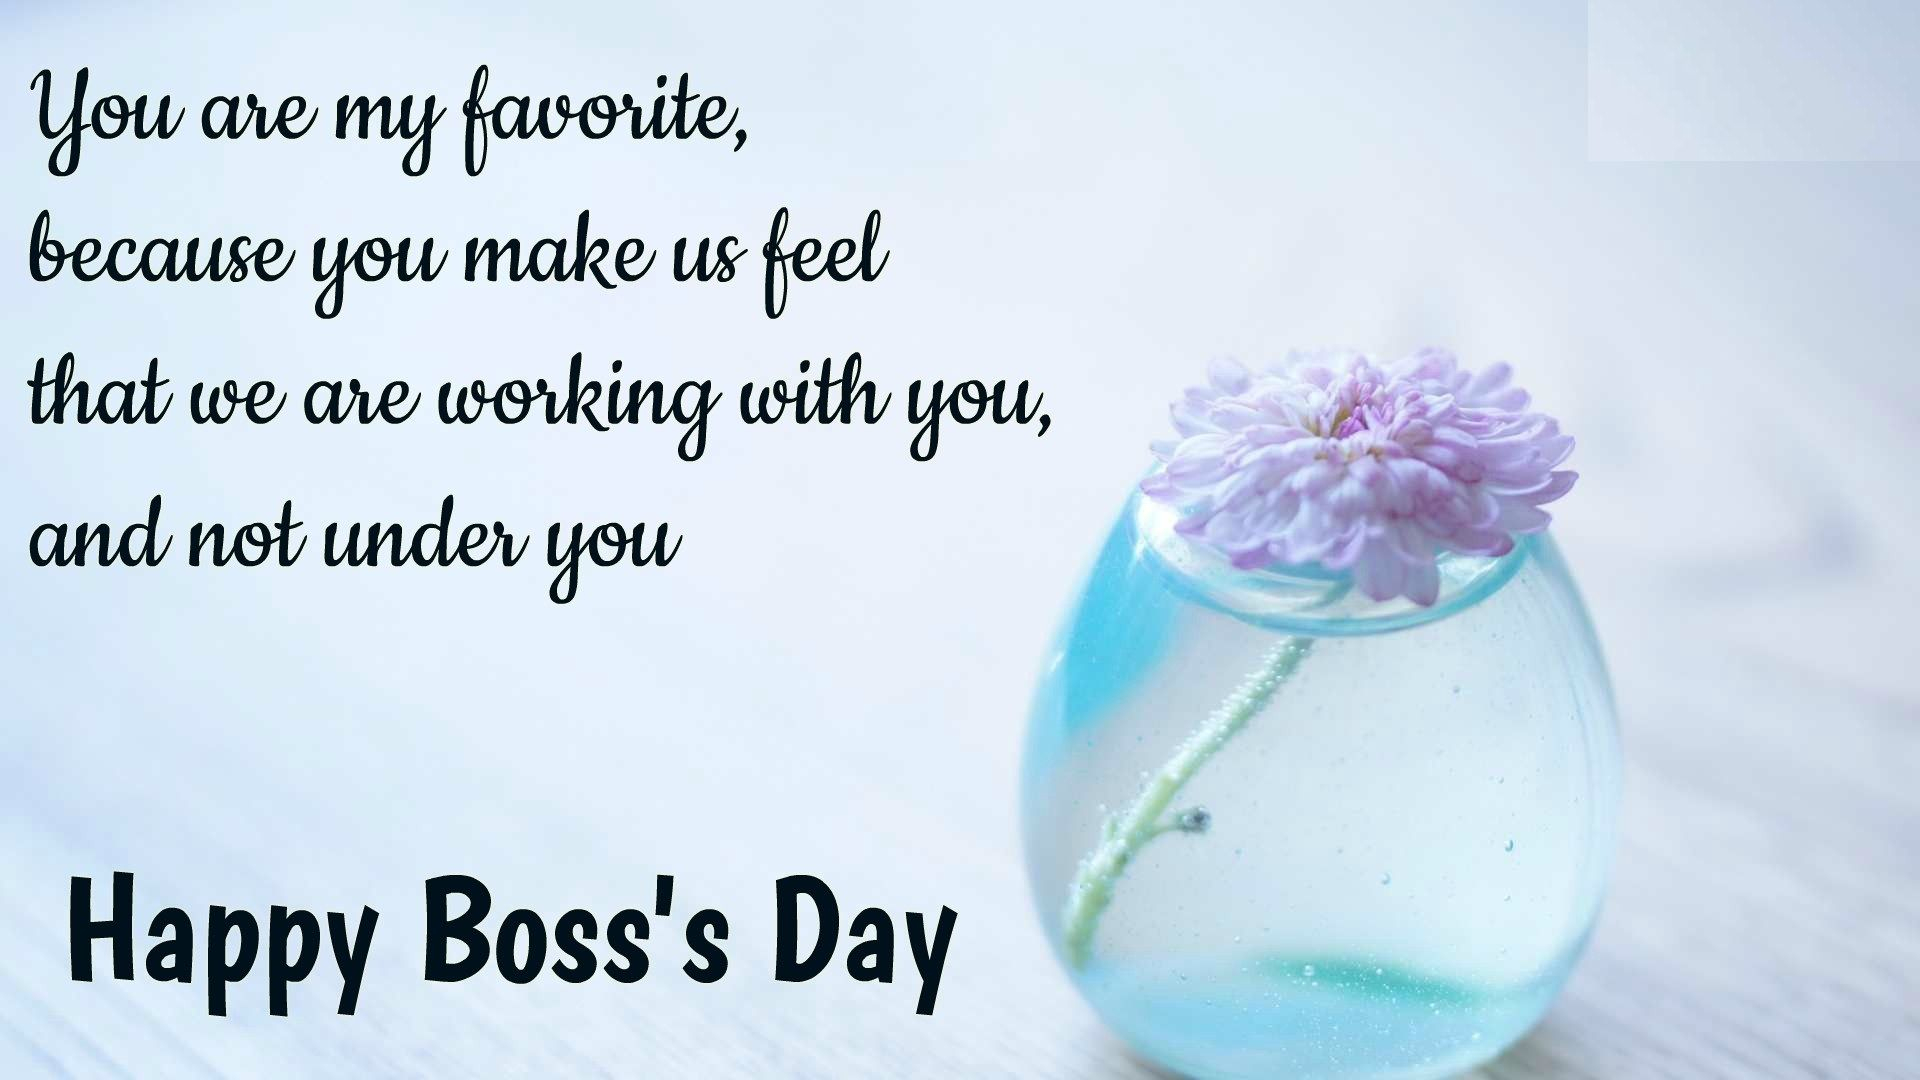 Boss Day Card With Quotes   Boss Day Images   Pinterest   Boss Day - Boss Day Cards Free Printable